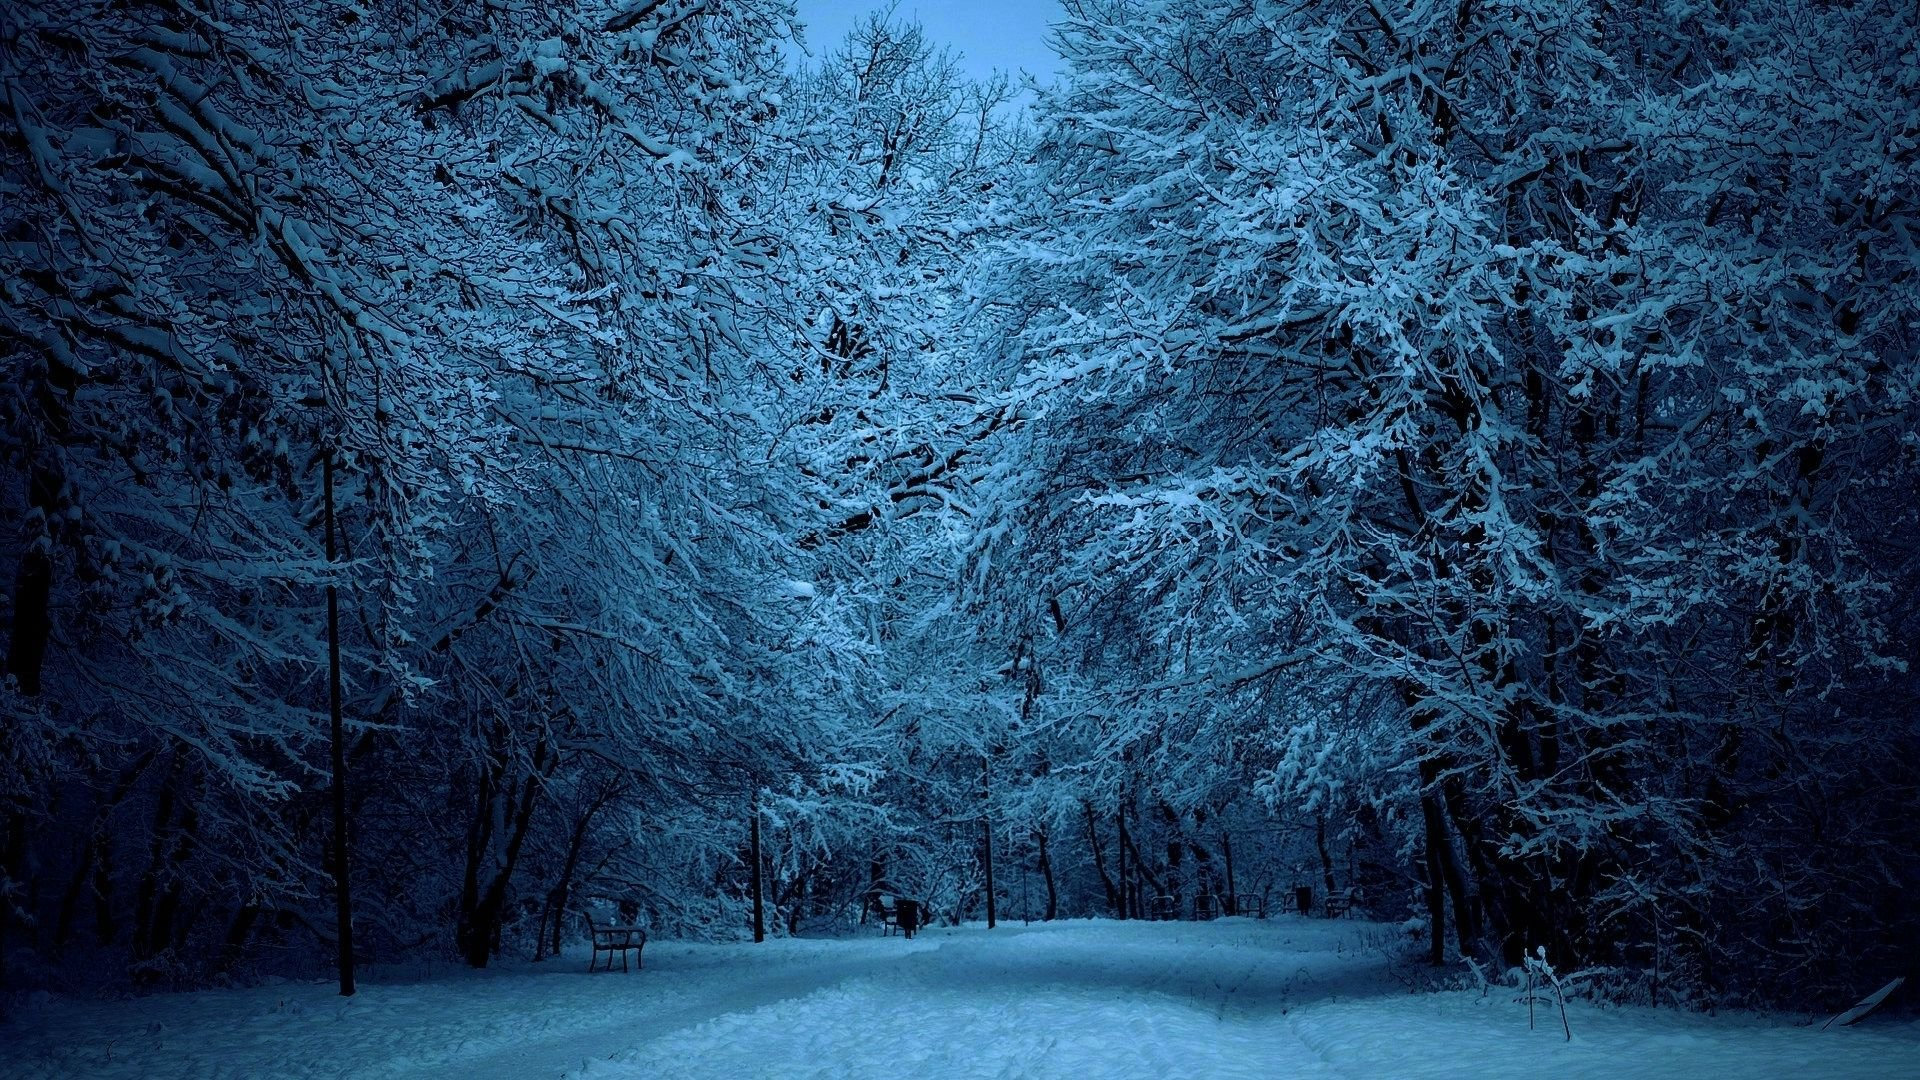 Snowy Trees 16533 HD Wallpaper